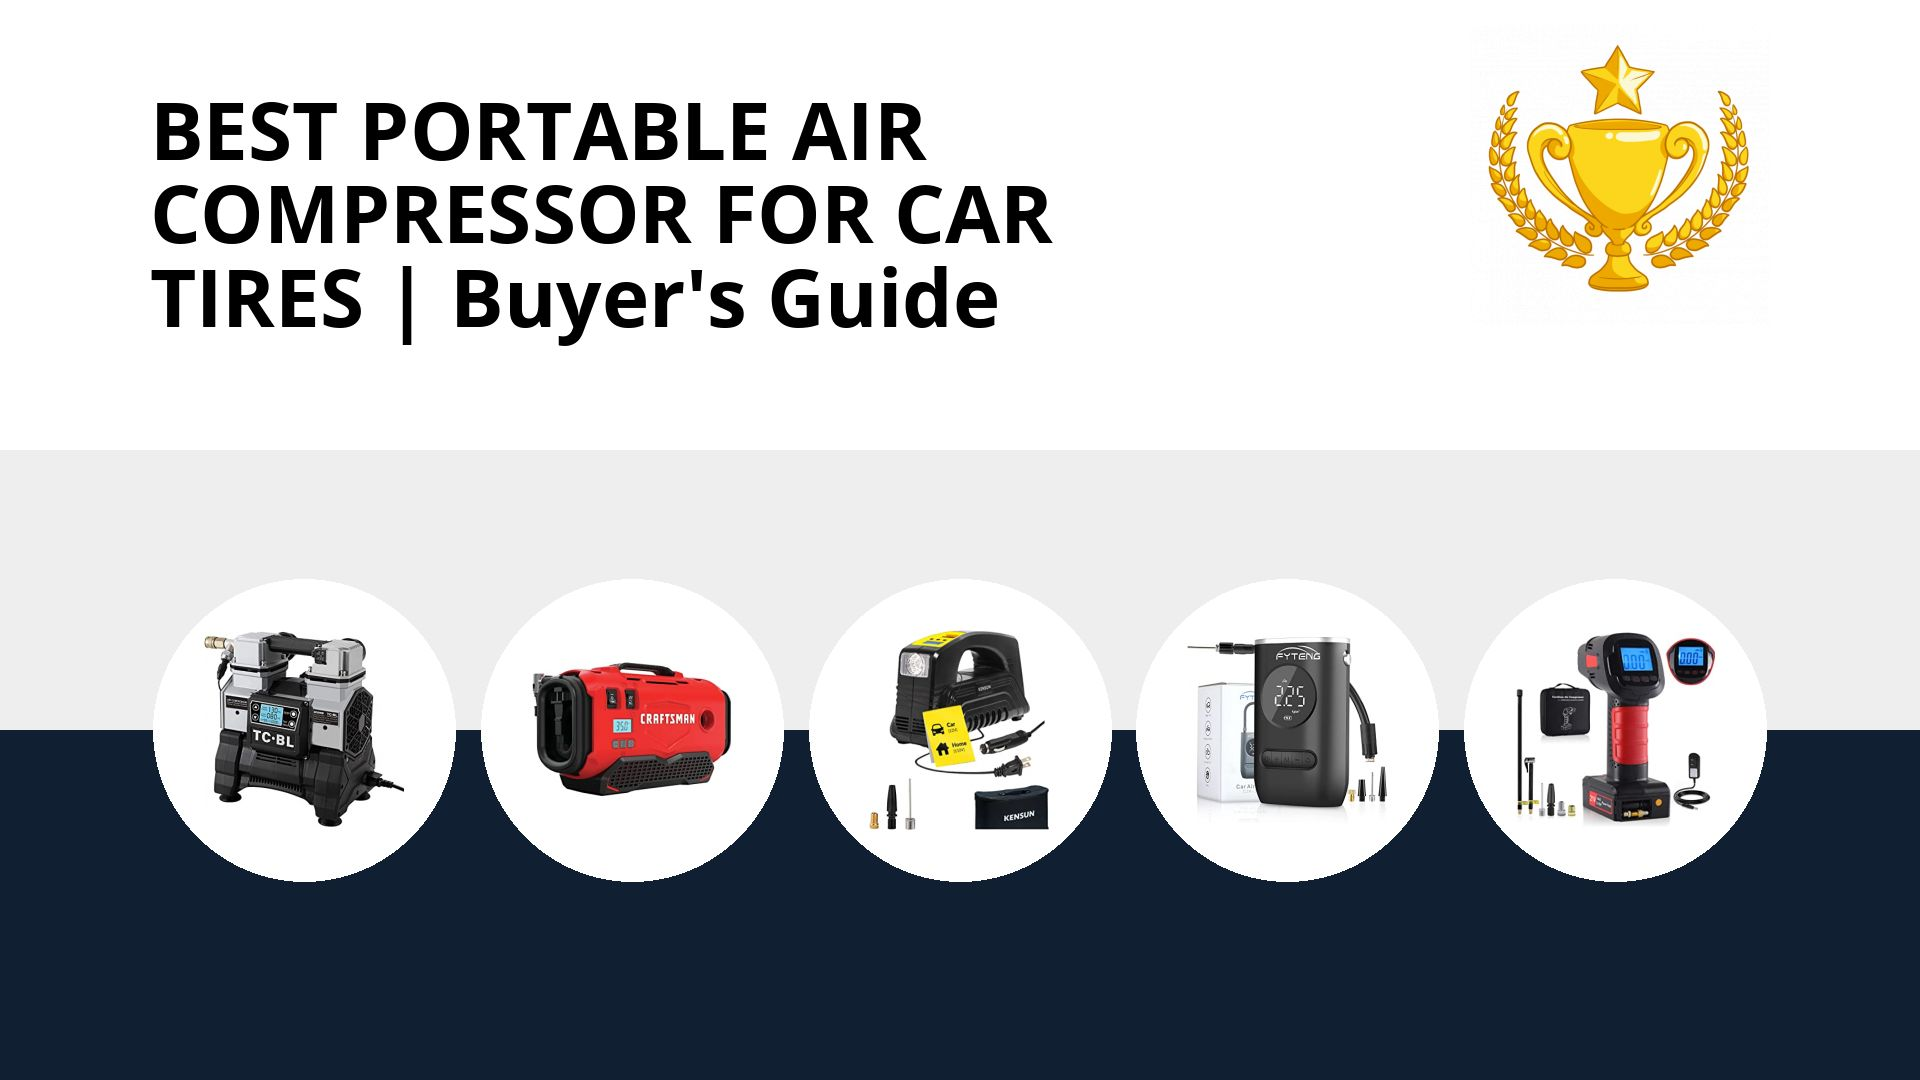 Best Portable Air Compressor For Car Tires: image